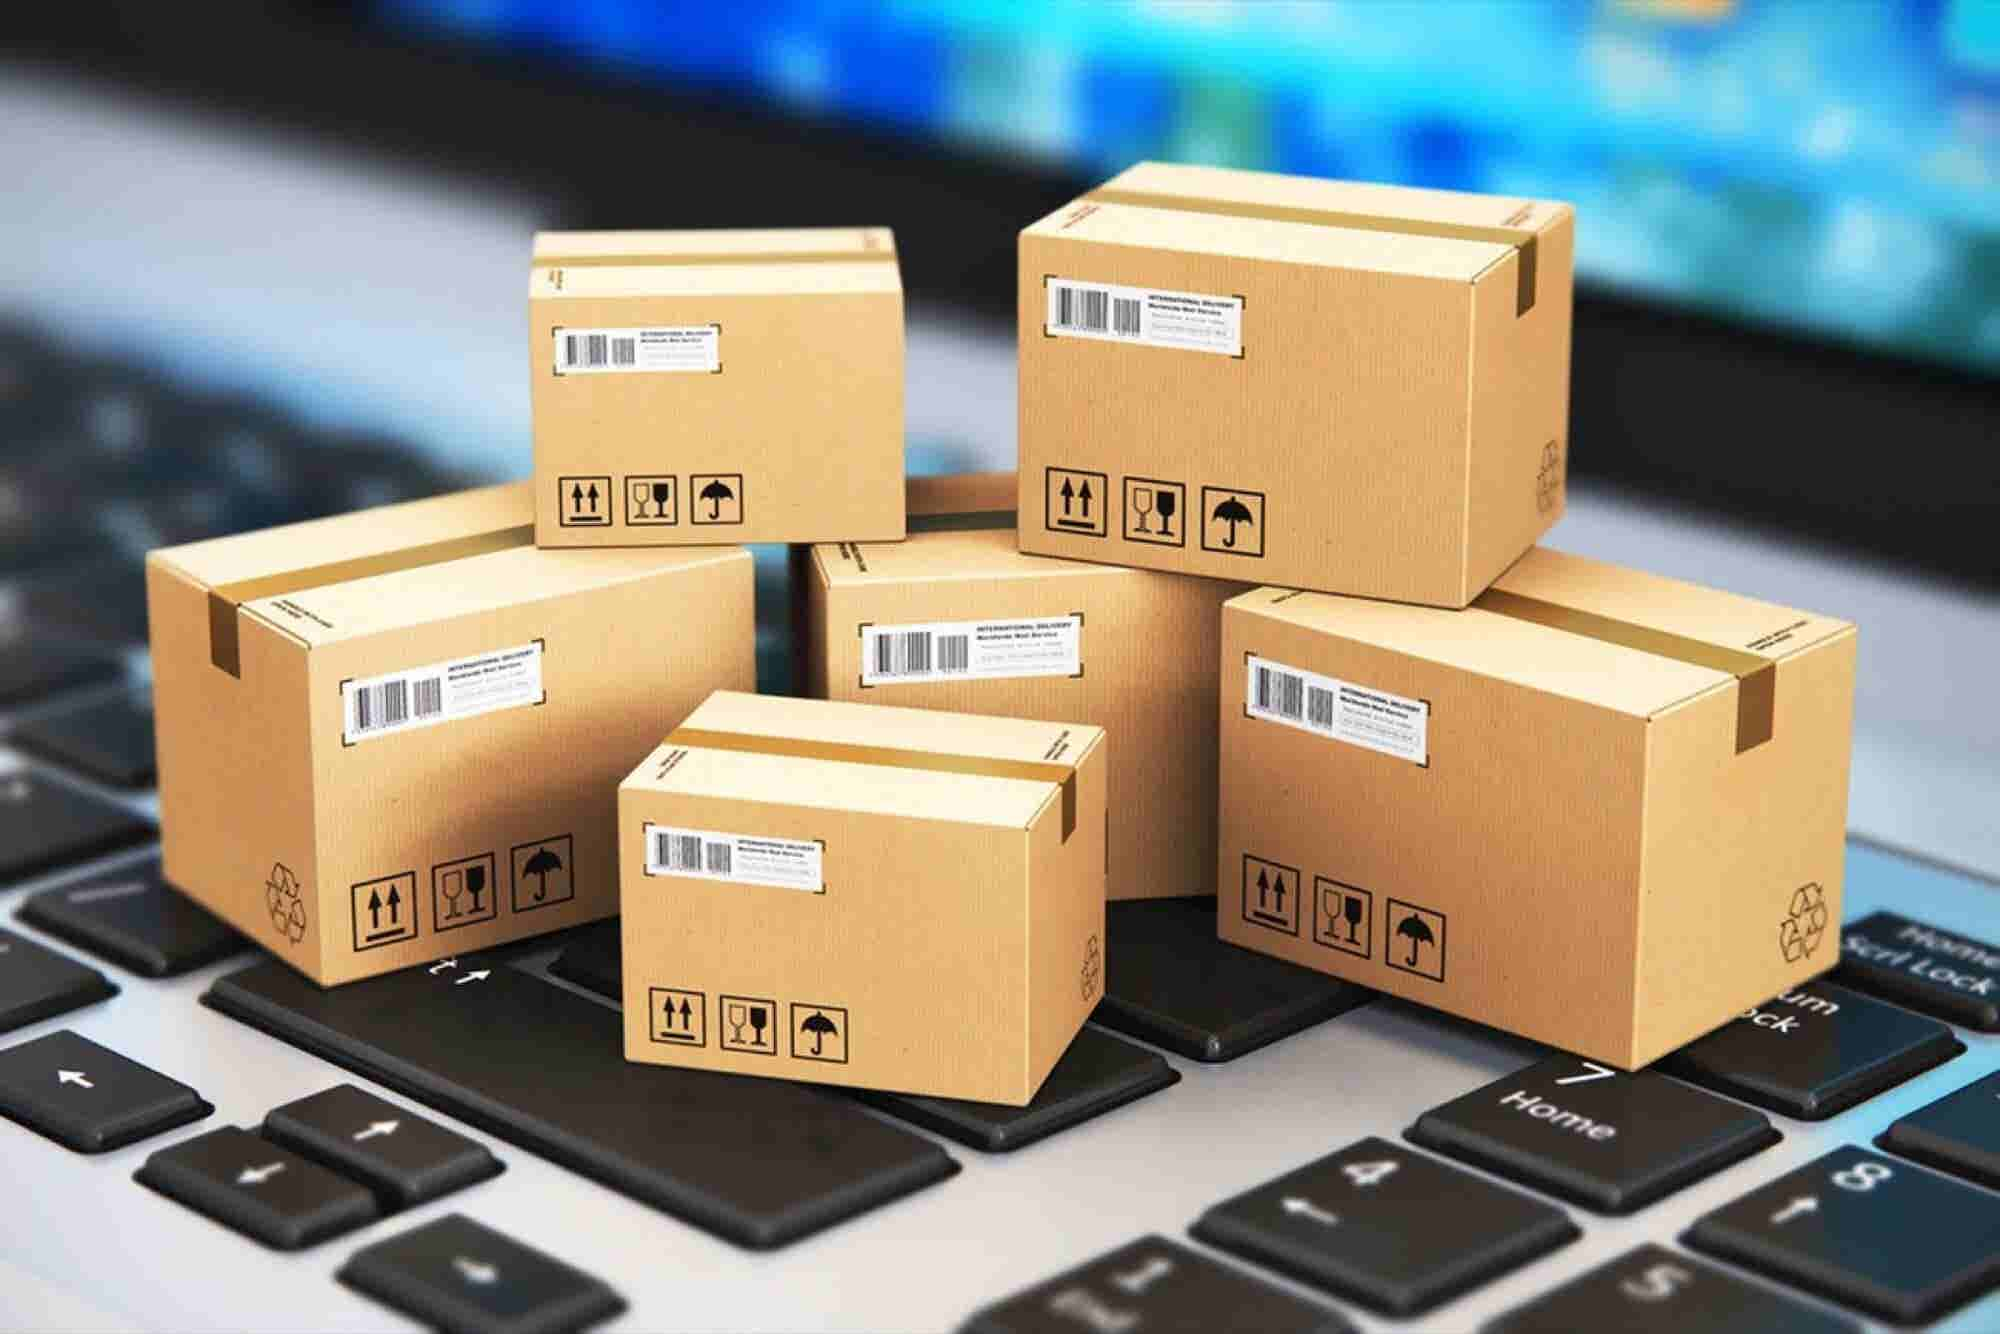 E-Commerce Businesses Can Improve Their Logistics